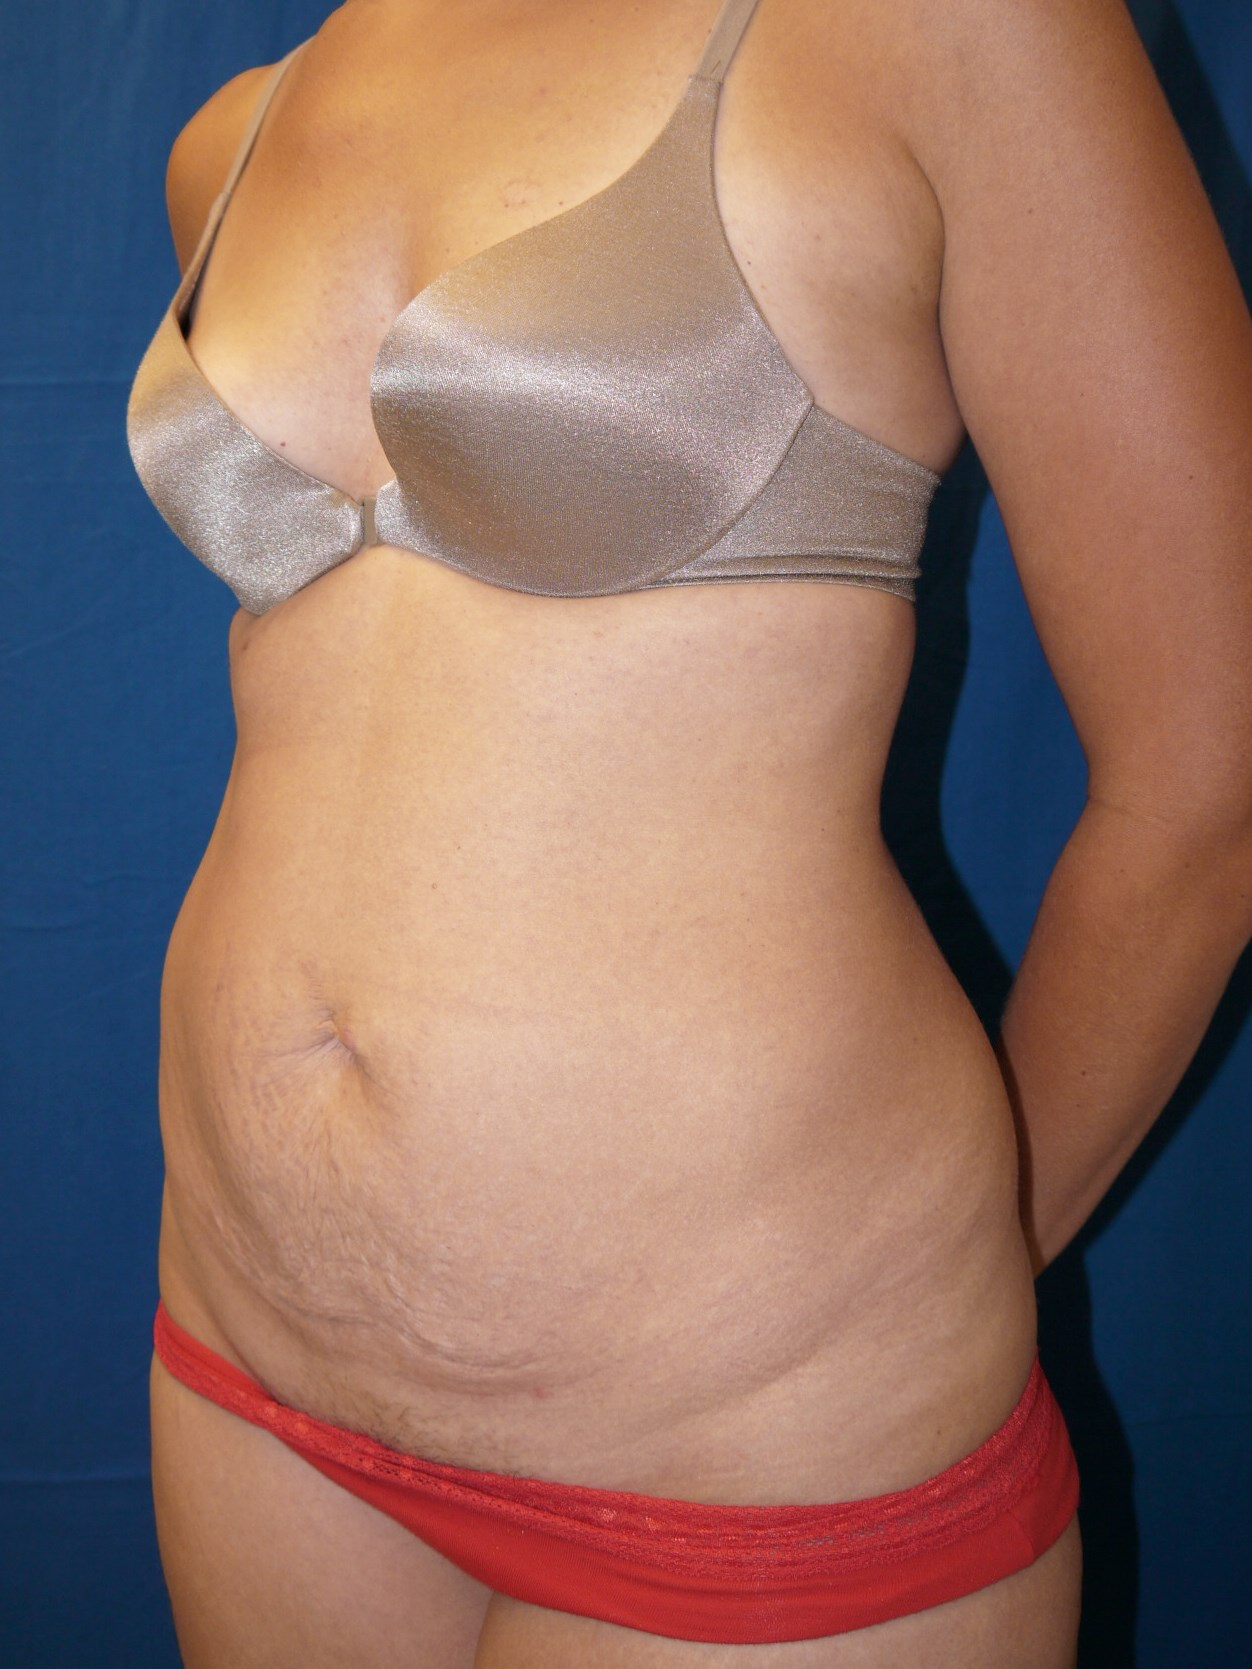 Tummy Tuck Before - Dr Mata